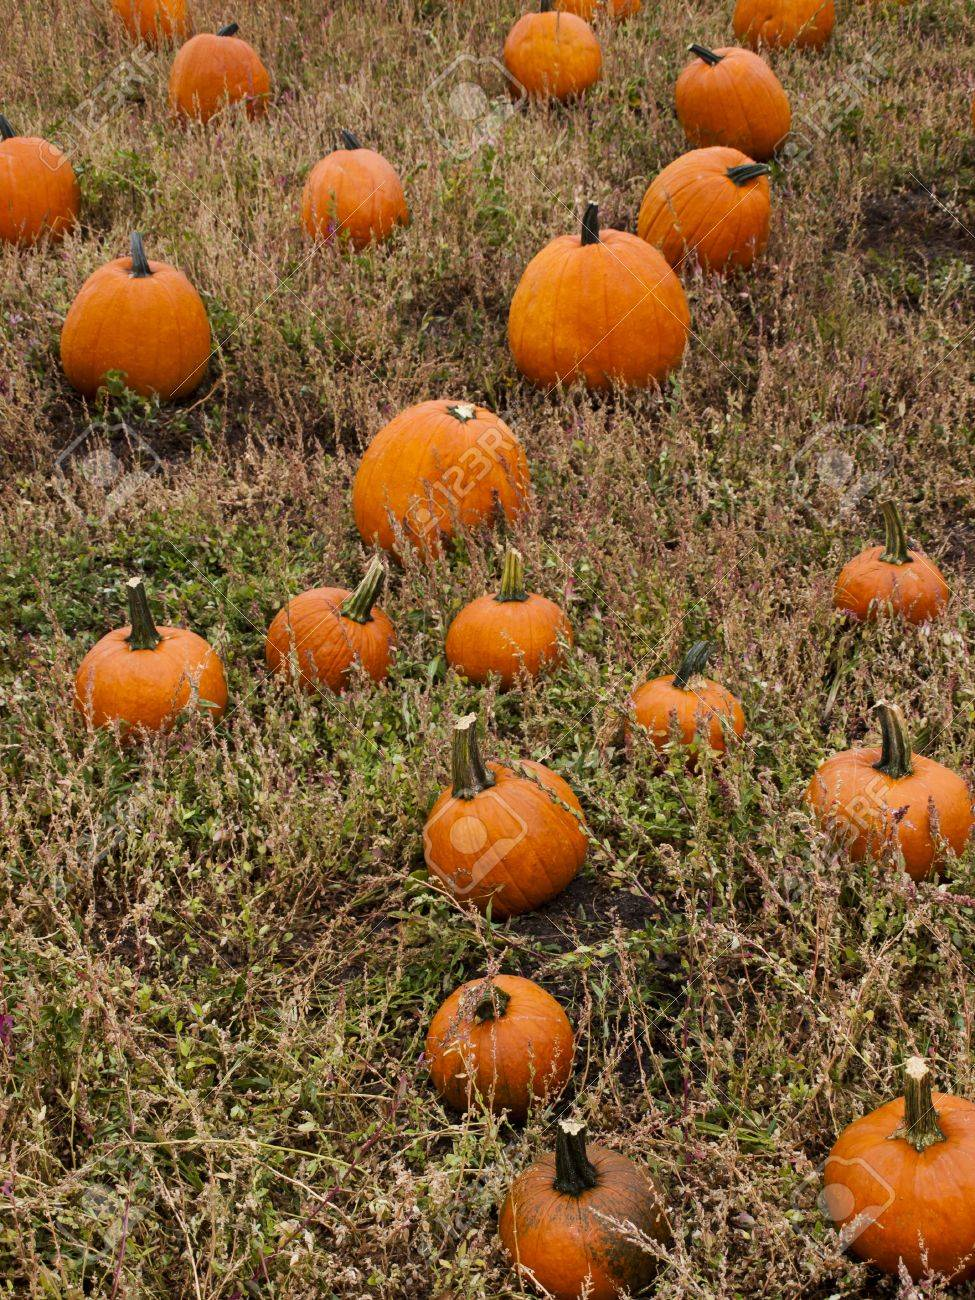 Pumpkins ready for harvesting on farm field in Autumn. Stock Photo -  15864874